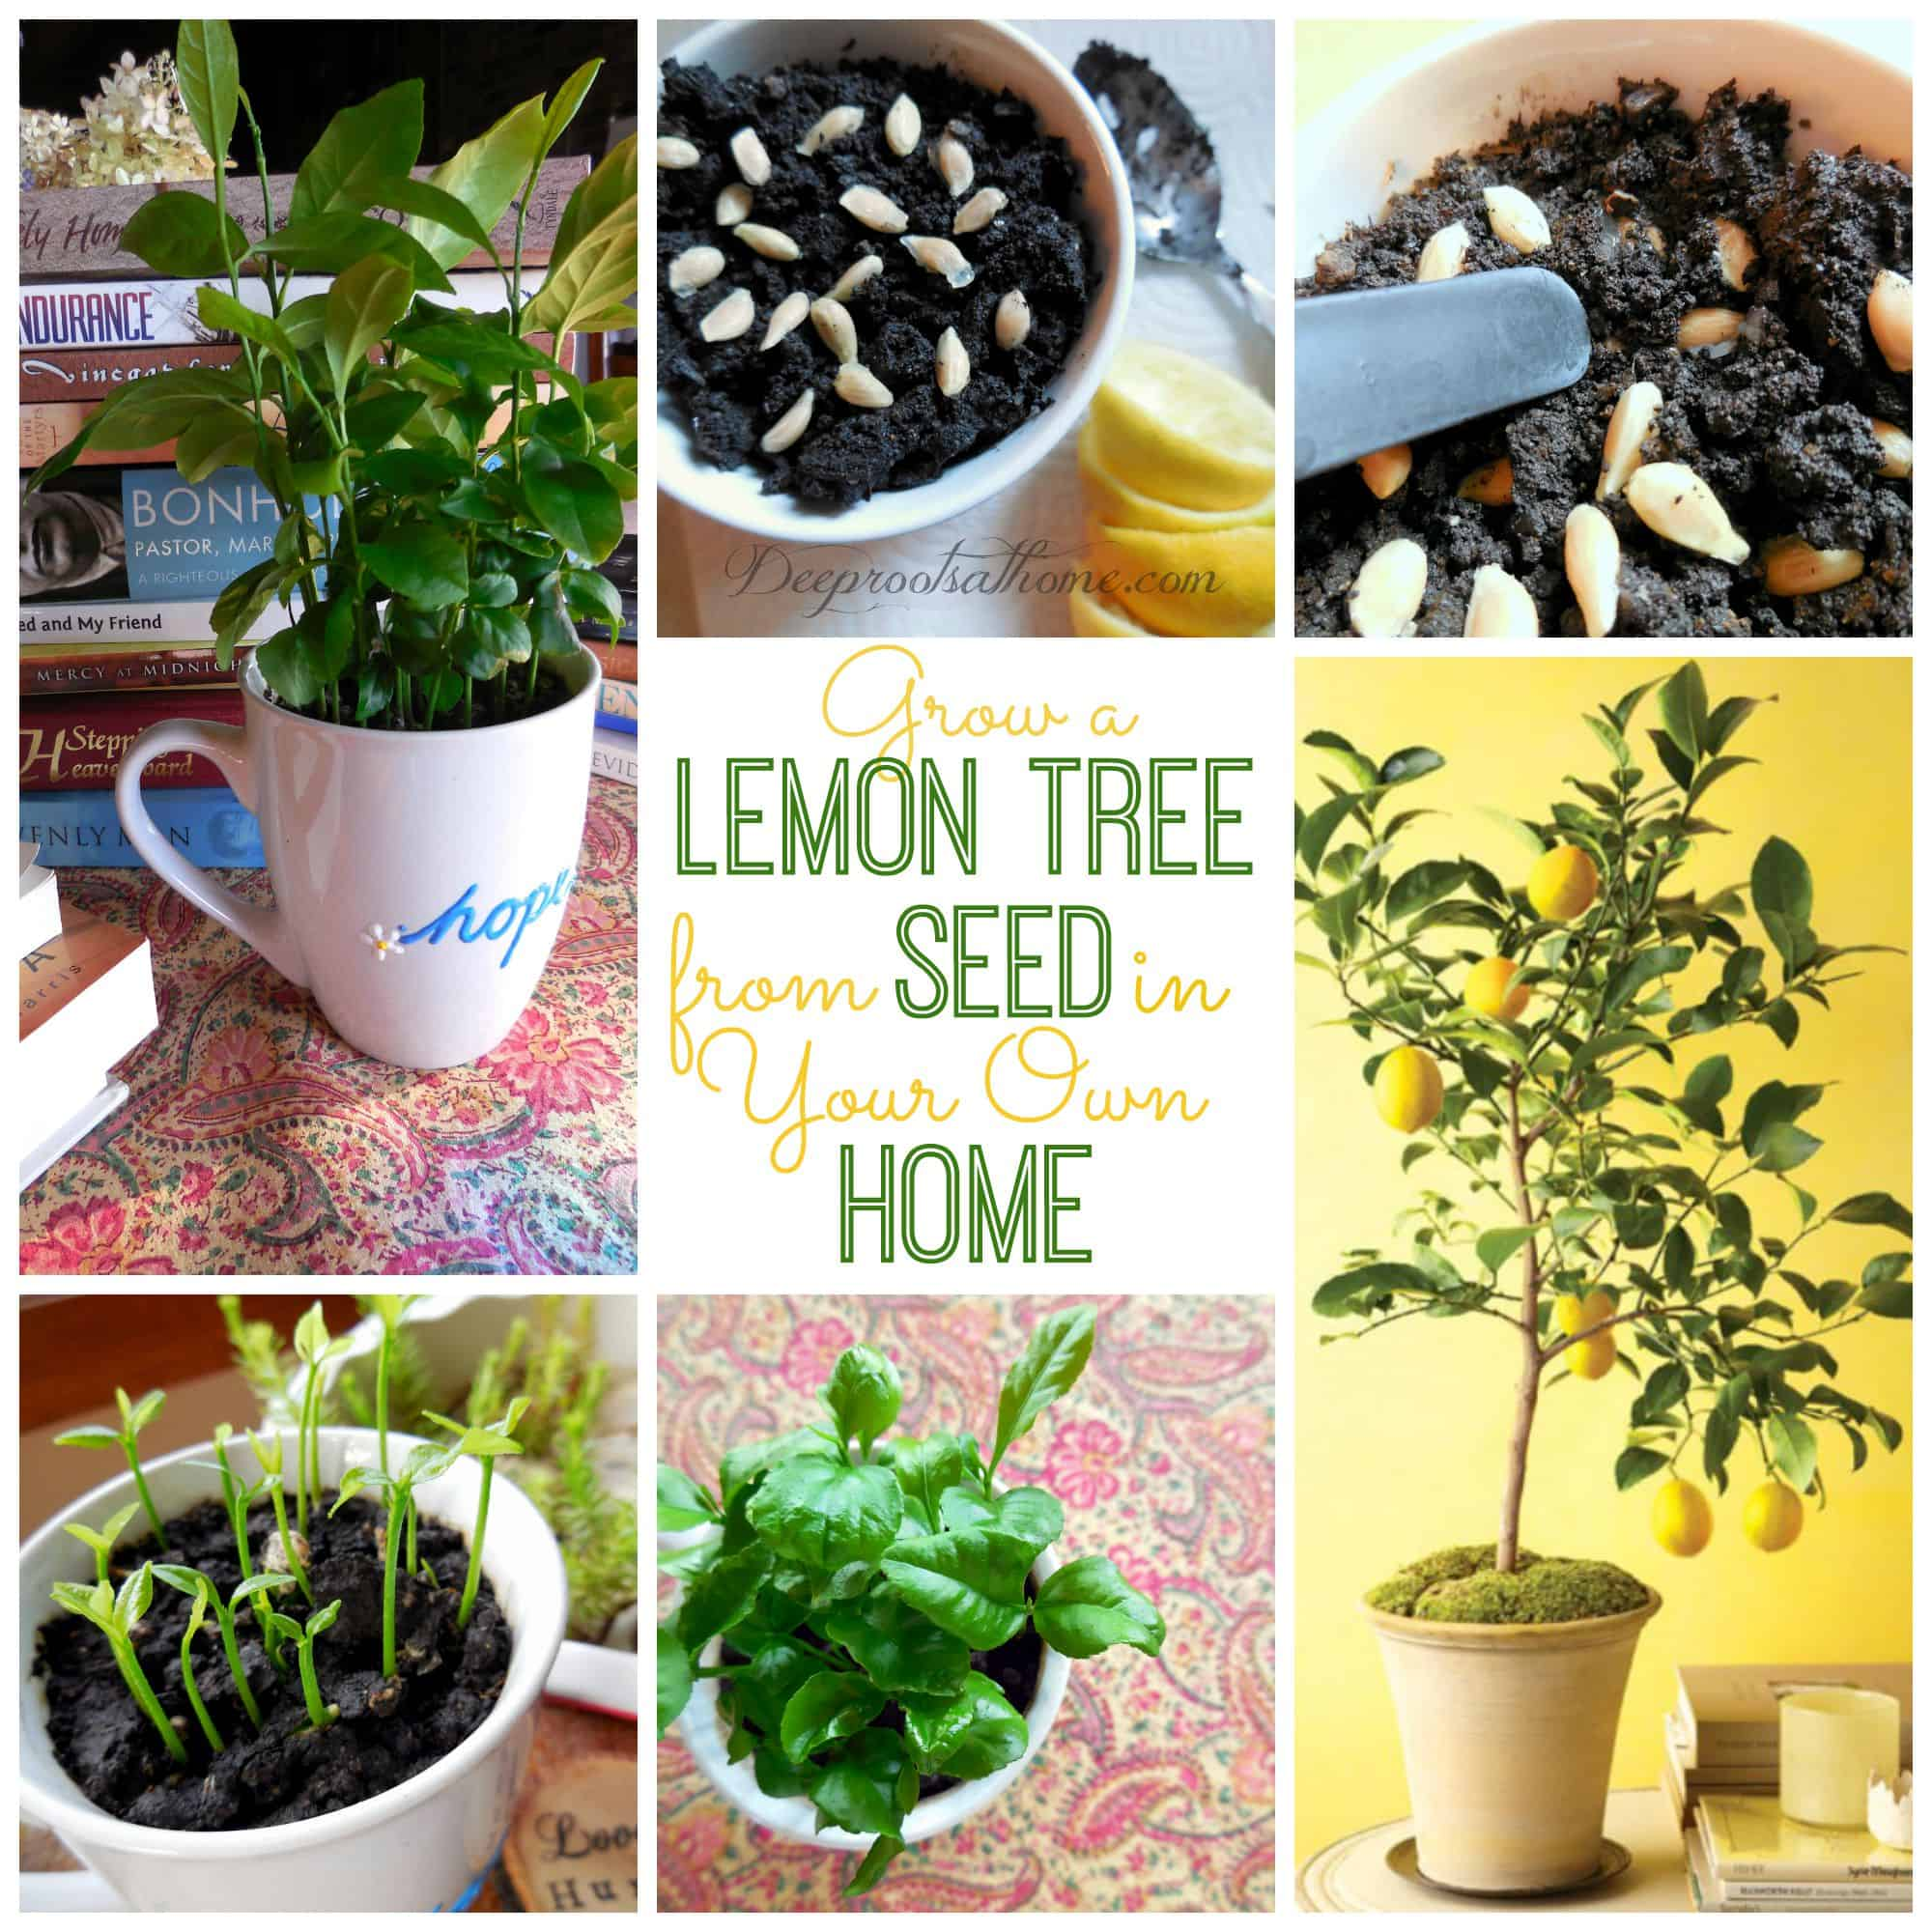 Grow a Lemon Tree from Seed in Your Own Home, grow citrus indoors, Versailles, France, orangery, greenhouse, beautiful, luxurious house plant, feeding, organic fertilizer, make lemonade, garden, patio, cold weather, lemons, bright spot, bright sunlight, south facing window, fruit production, watering plants, winter, summer, soil, DIY, leaf drop, pruning citrus, new growth, branches, outdoors, year-round, hot, sunny regions, indoors, edible houseplants, cold-season climates, miniature, cheer, sunny space, foolproof, windowsill, forest, fruit, rich in magnesium, calcium, phosphorus, potassium, vitamins, fragrant, potted plants, Marie Antoinette, at home, starting from seed, germinated, homegrown, dwarf varieties, Meyer lemon, kaffir lime, calamondin oranges, dwarves, 2-3 year old plant, food store, Whole Foods, grocery, organic lemons, non-organic, germinating, planting, stones, moist soil, sunny spot, sprouts, be patient, mist, over-watering, cling wrap, greenhouse effect, seedlings, transplant, pot, drainage holes, saucer,